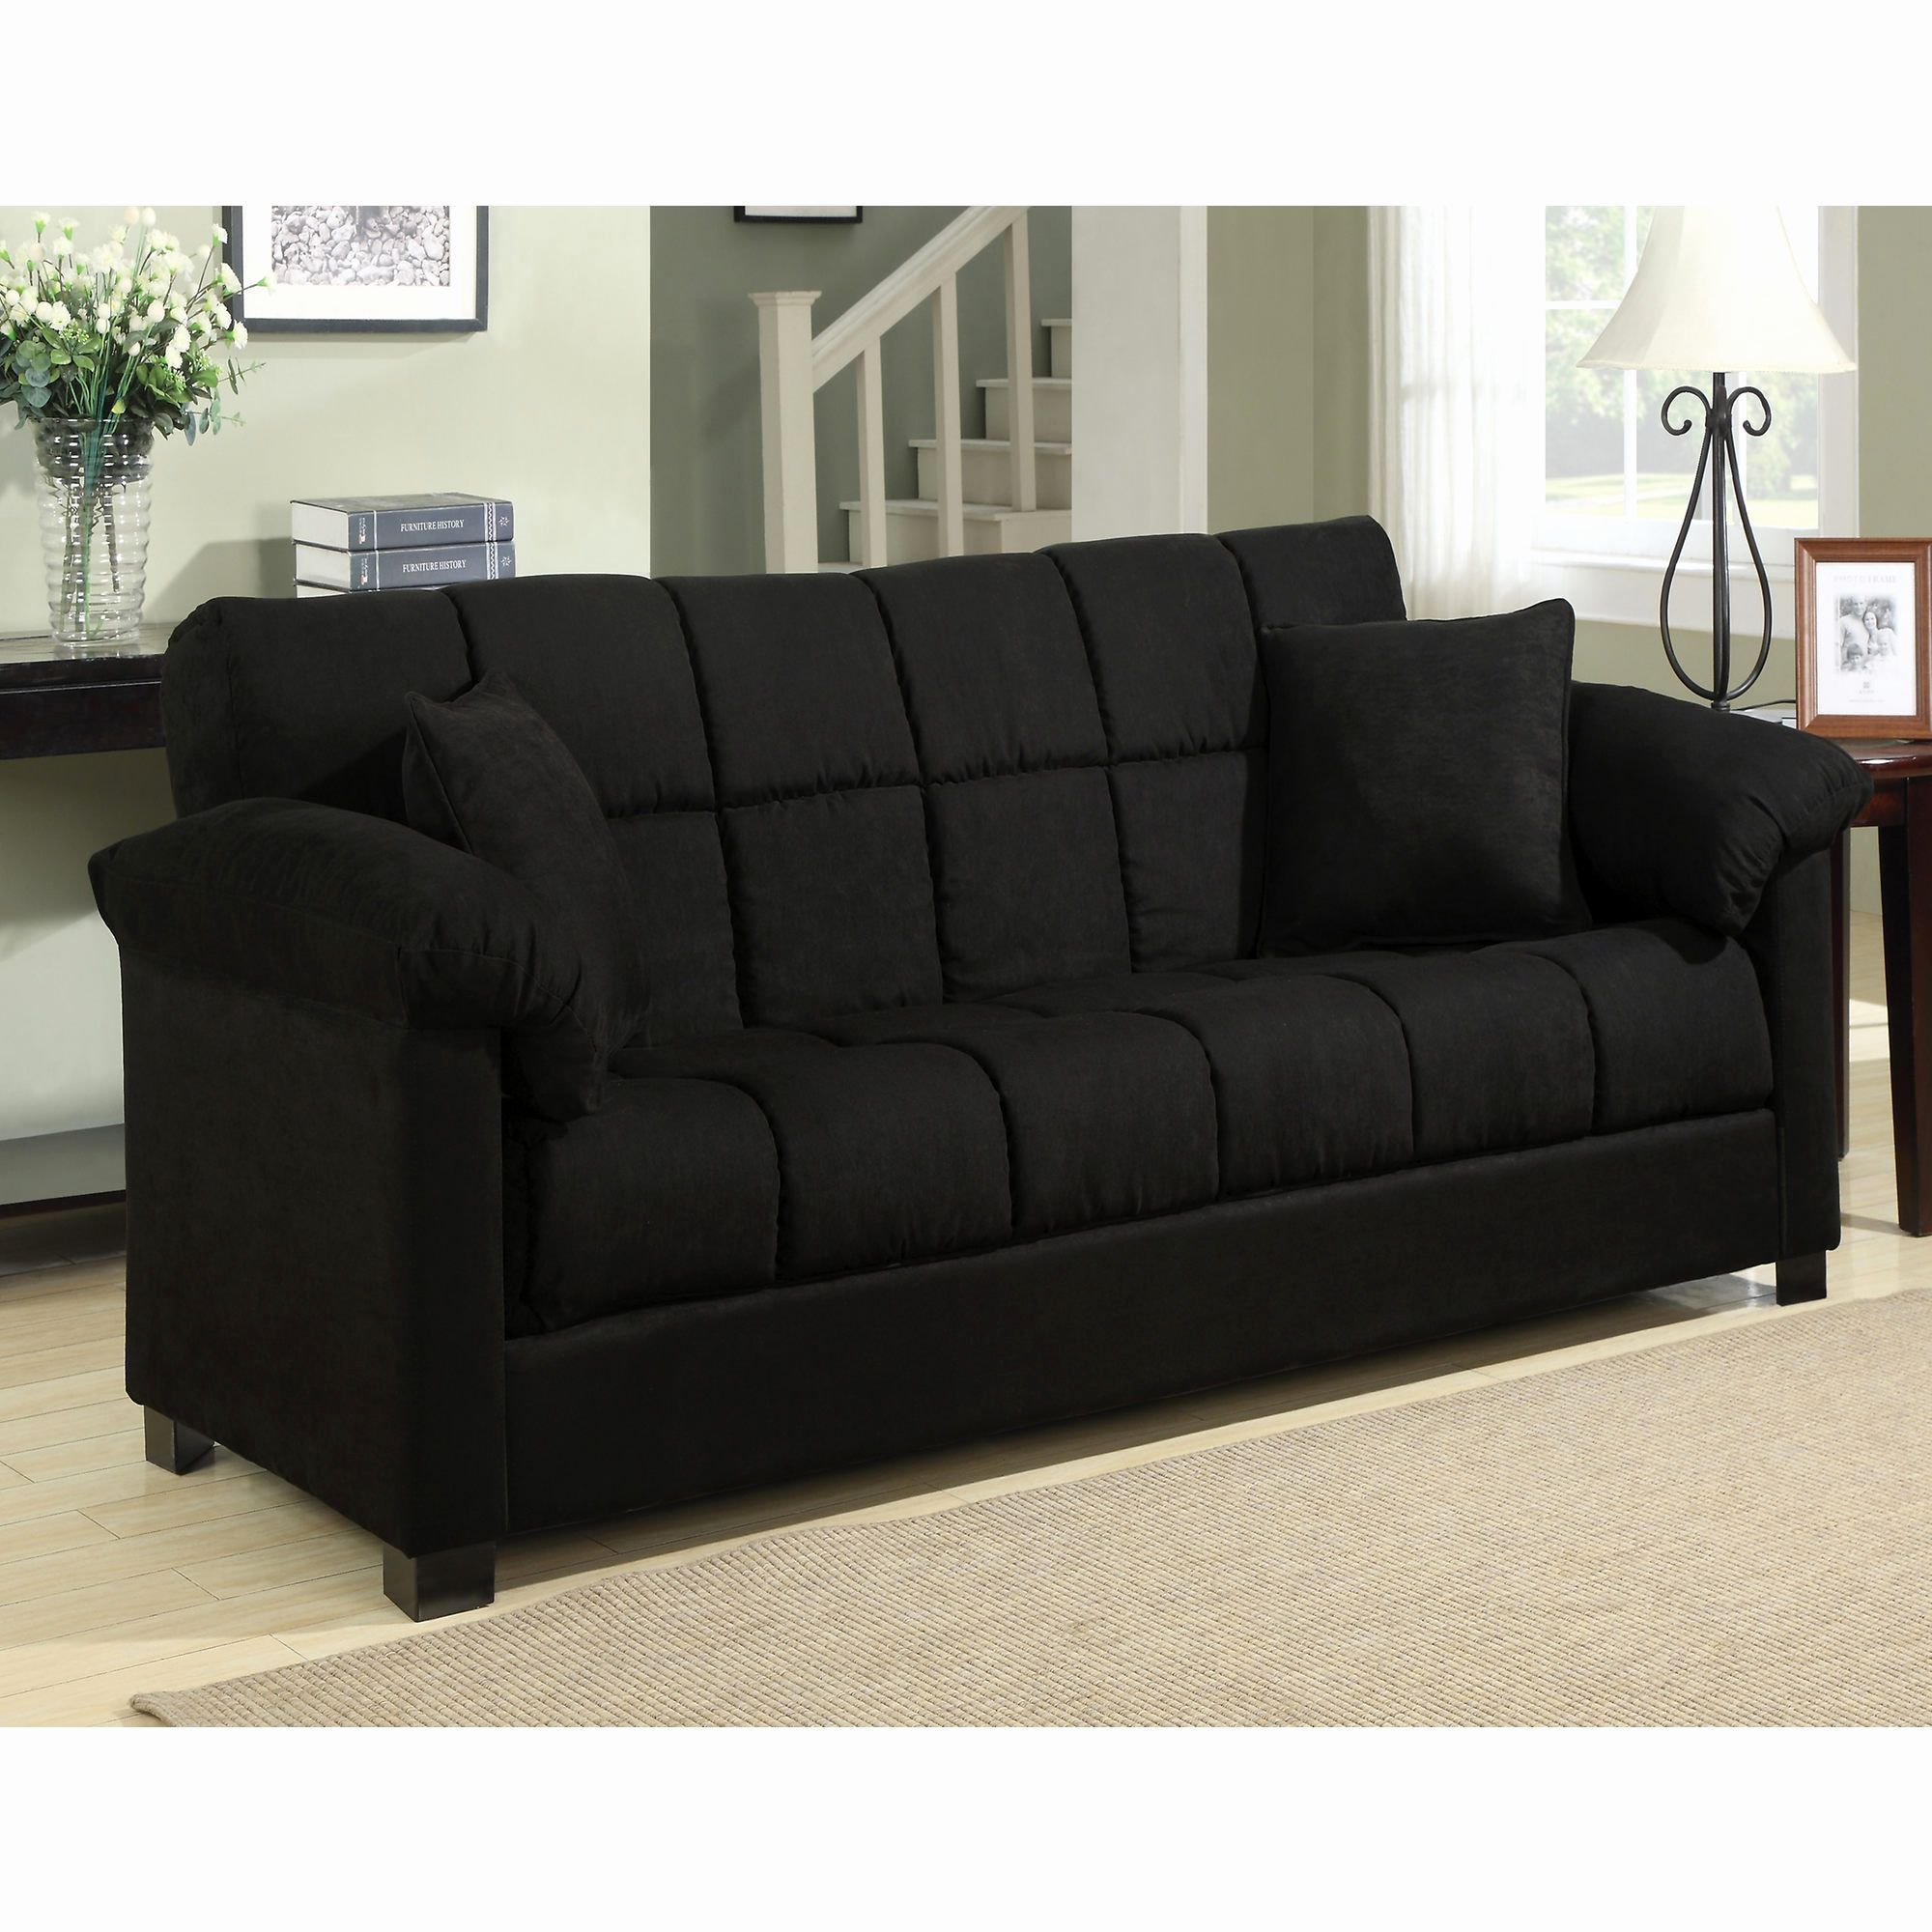 Best Sleeper Sofa Mattress Replacement Photograpy Awesome Convert To 74 On